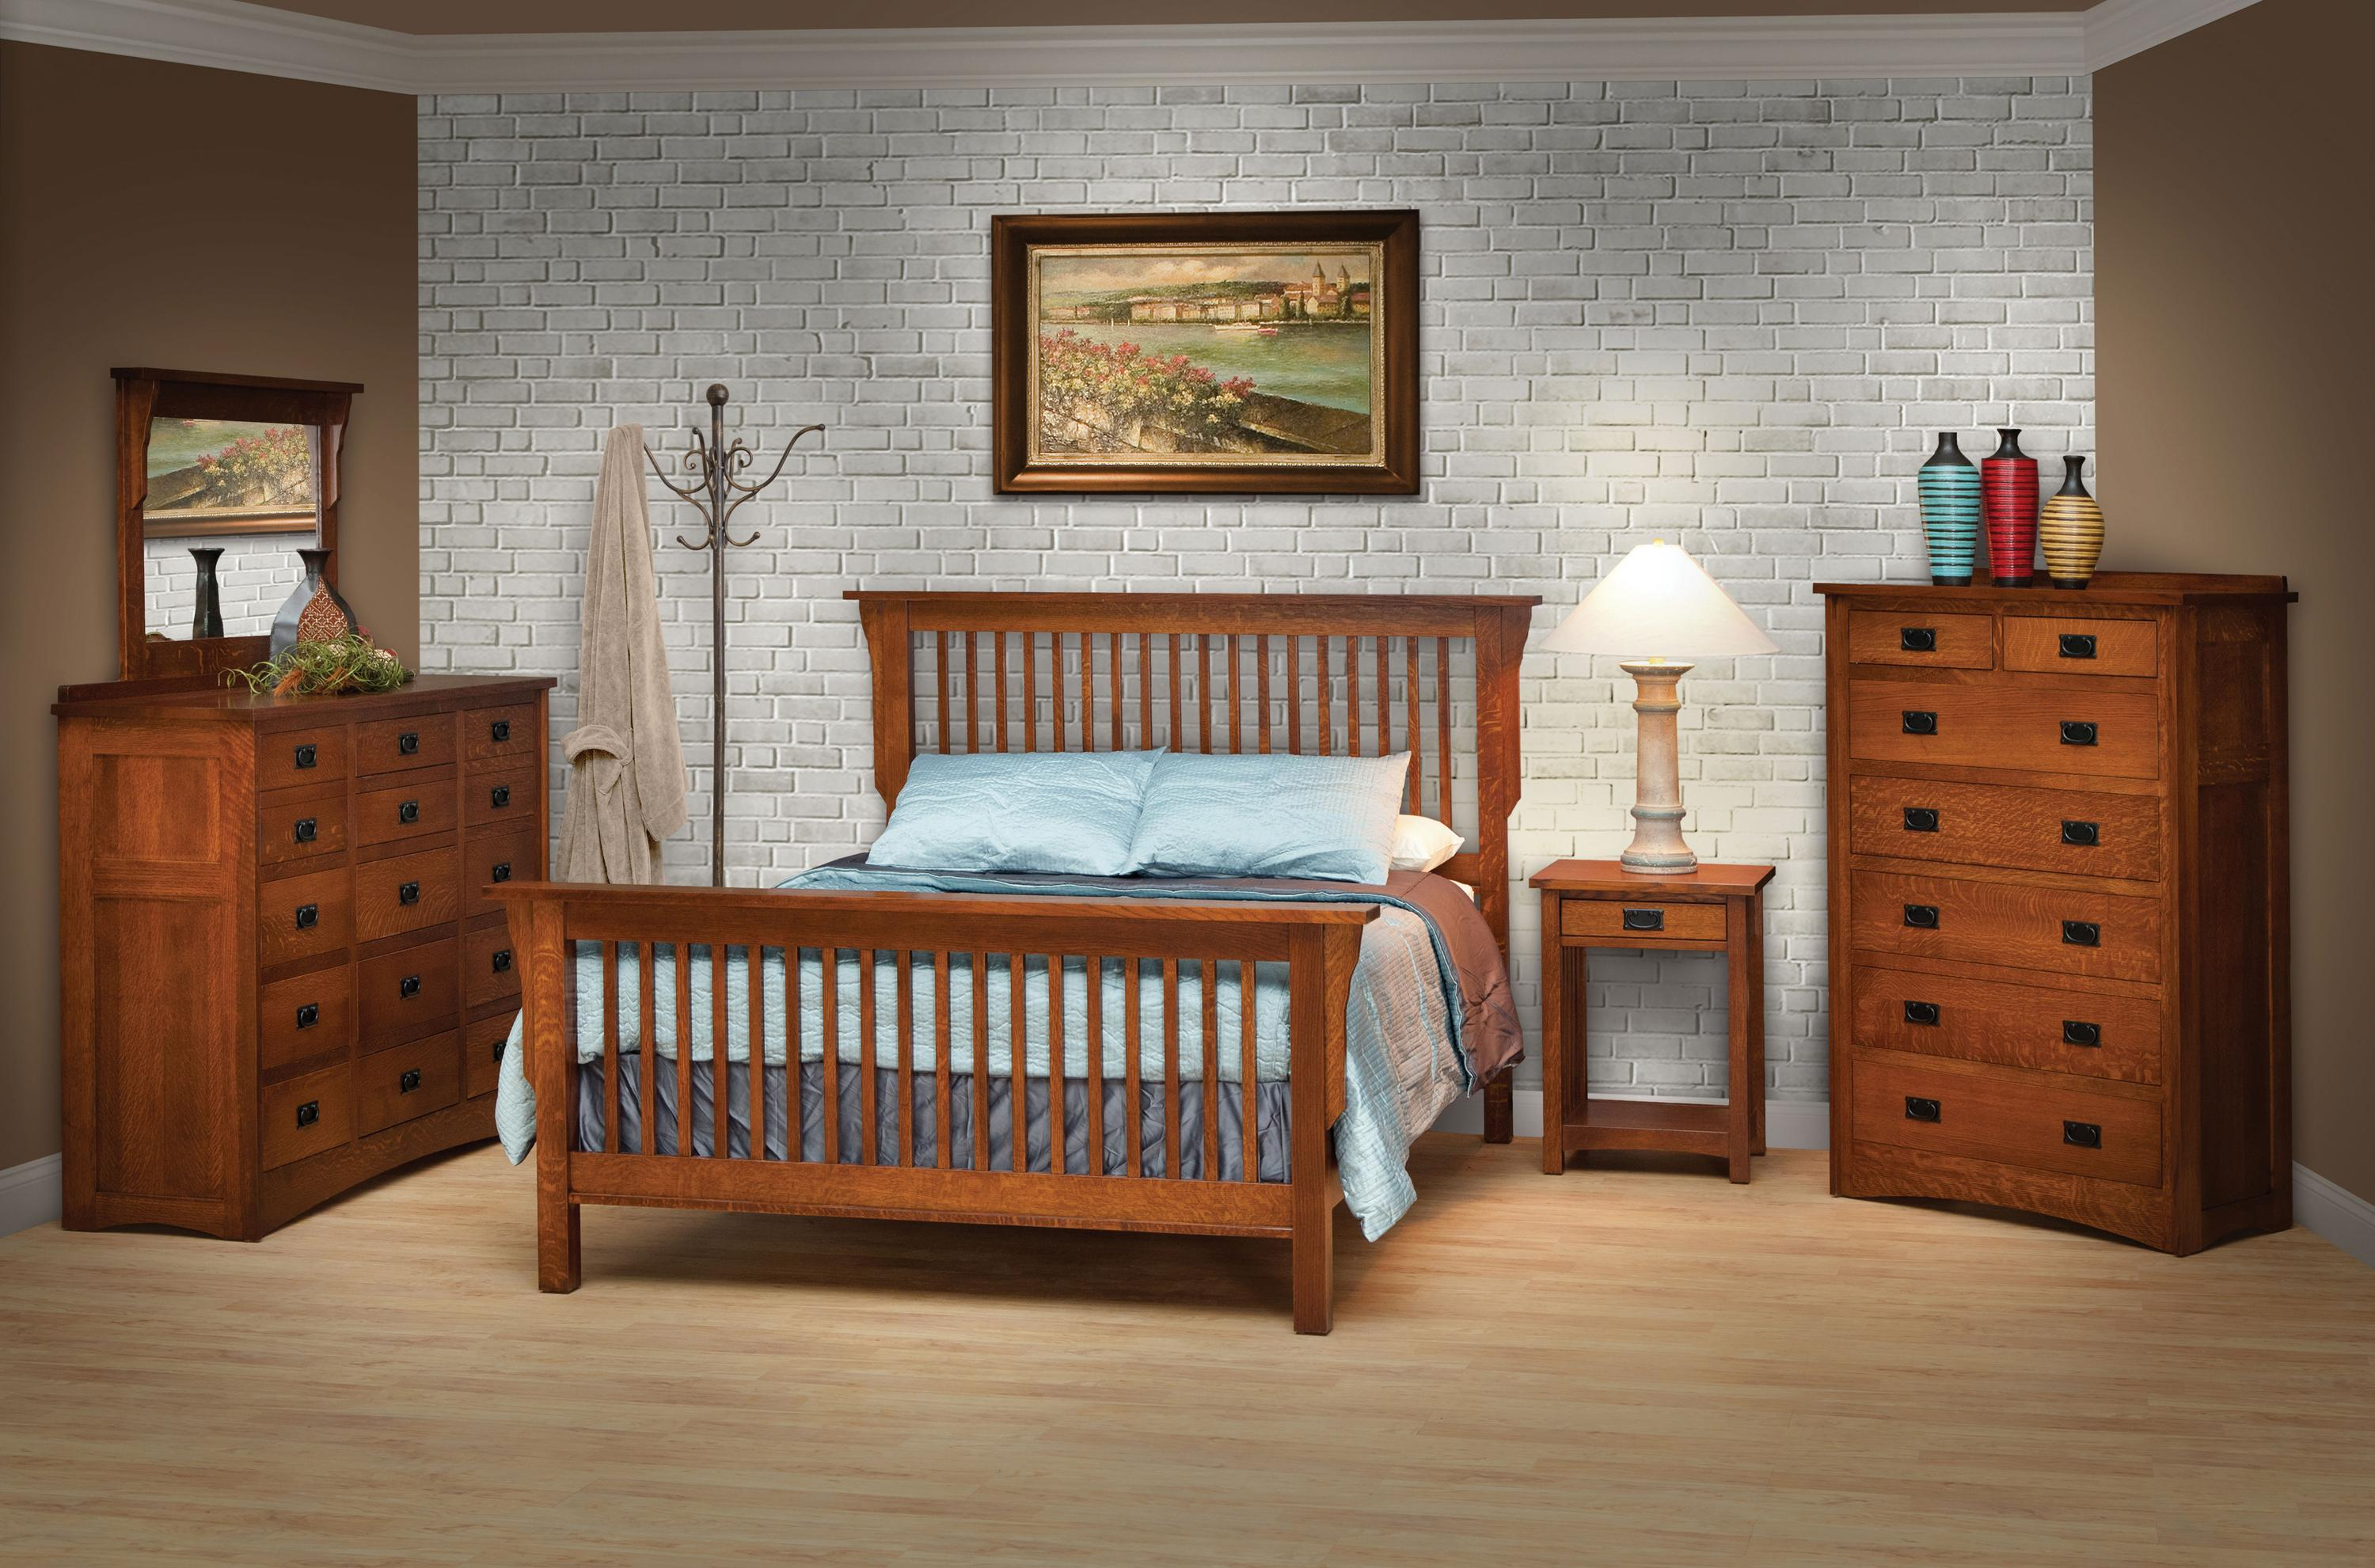 15drawer solid wood triple dresser solid wood bedroom furniture